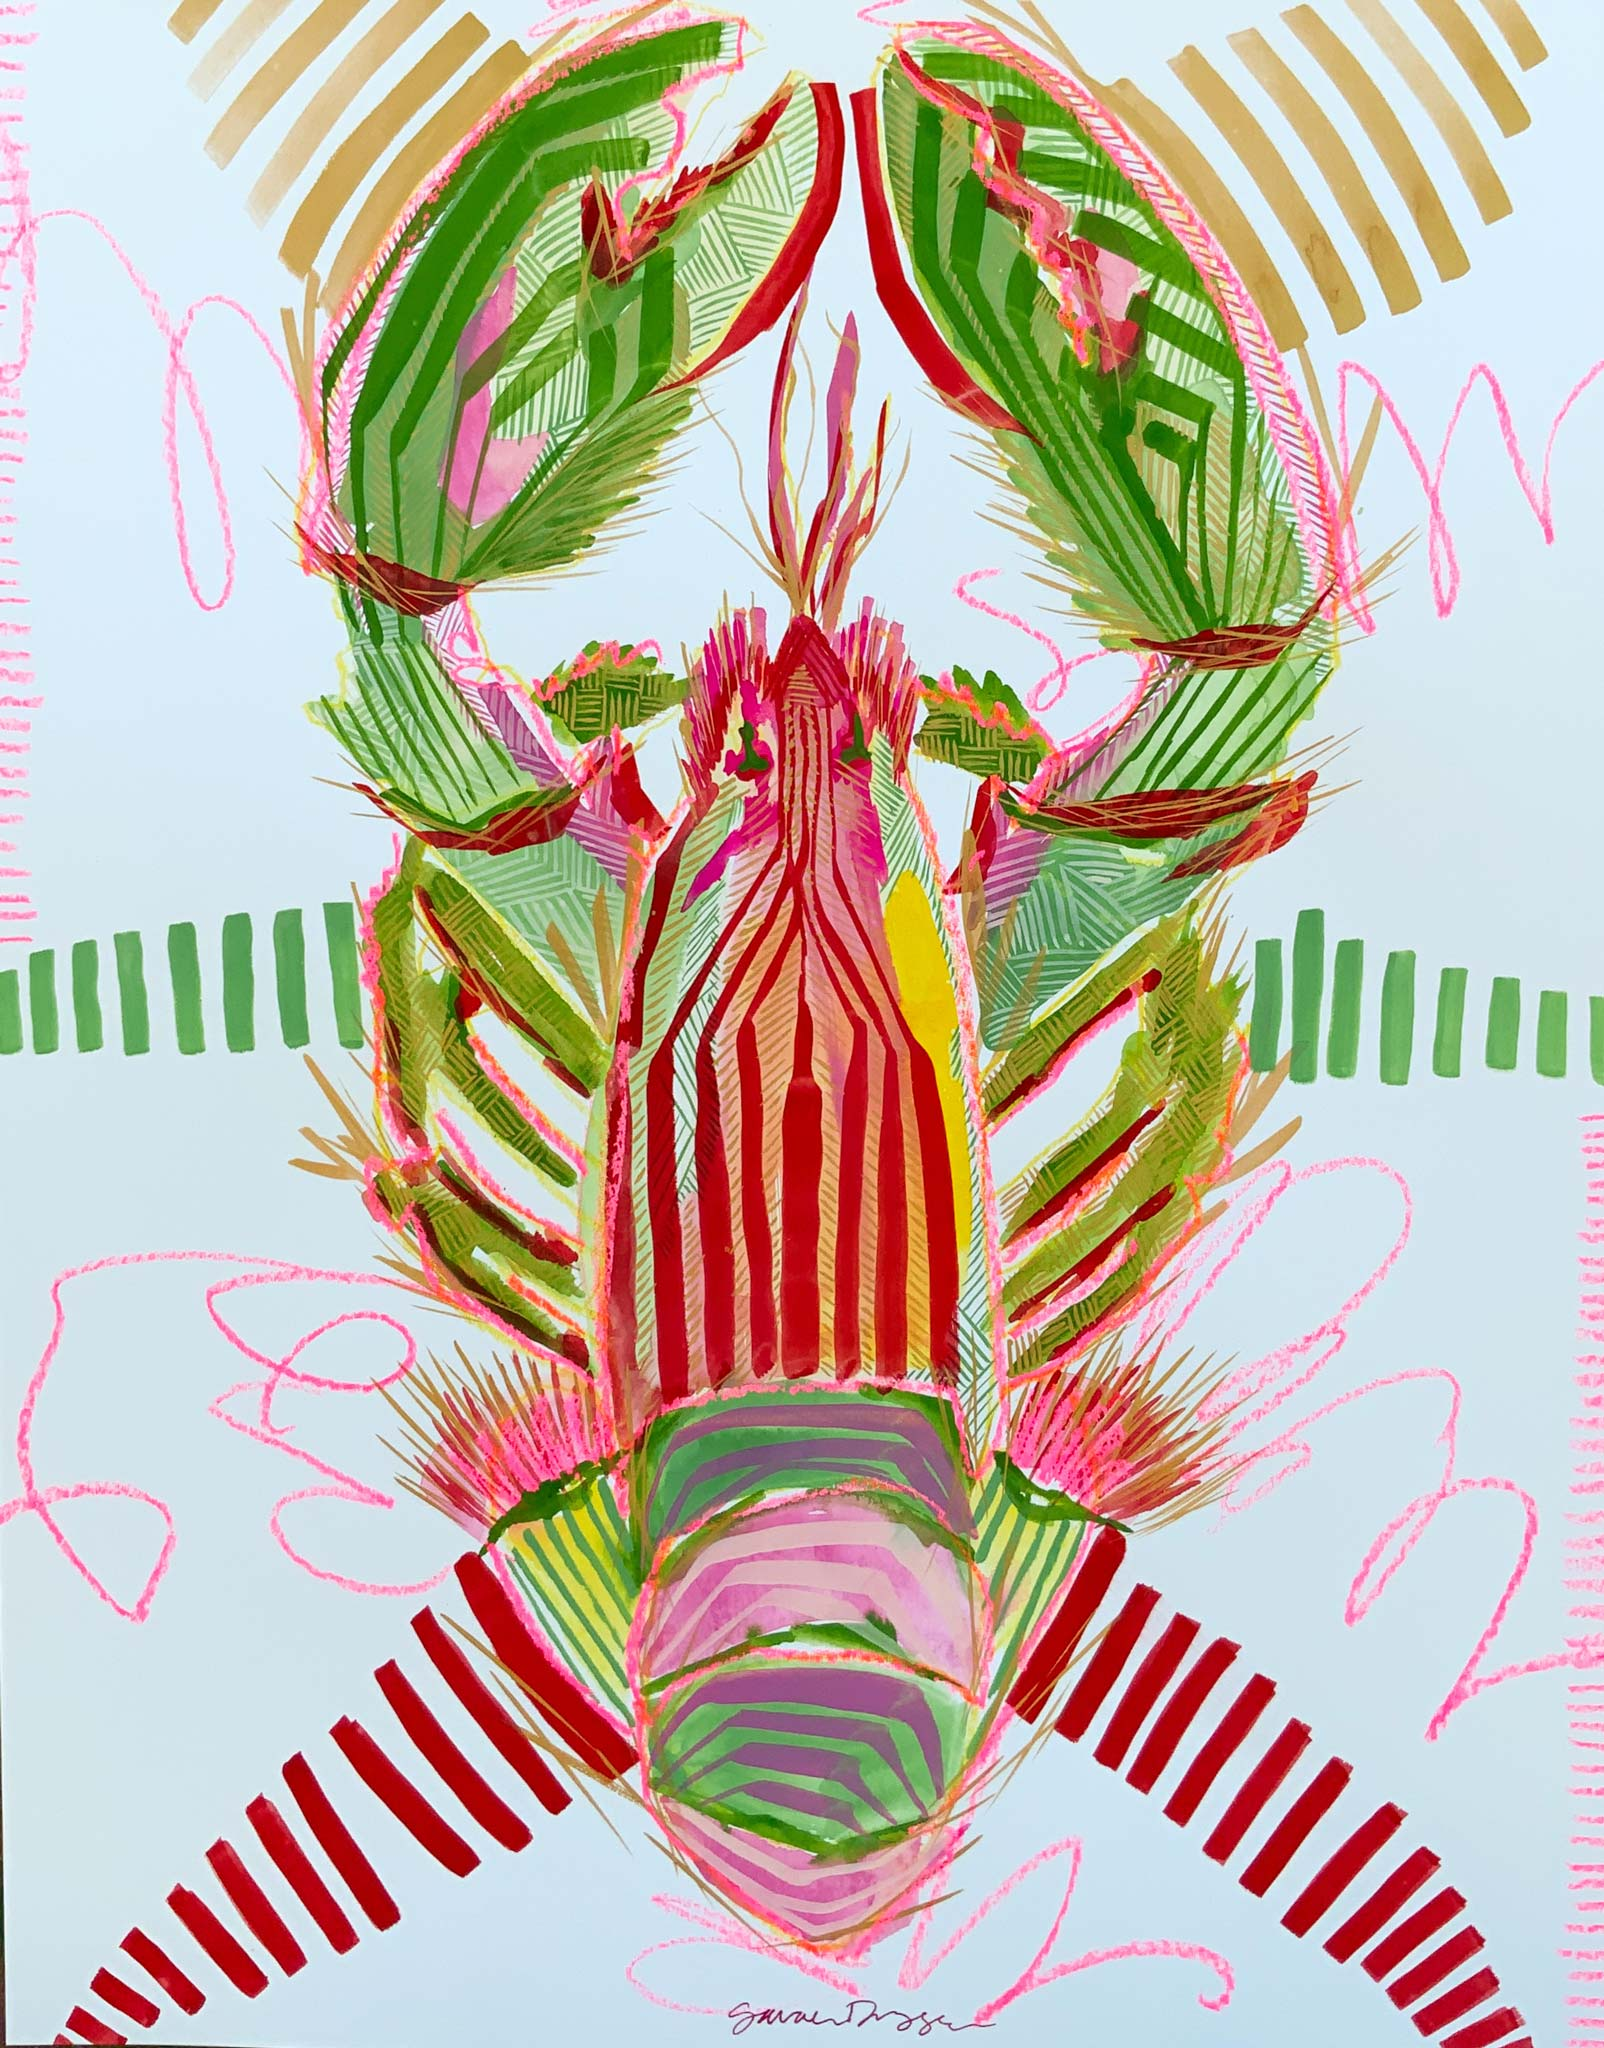 gouache, singular subject lobster in red, gold and green, white ground, bold lines, layered lines create form, graphic style